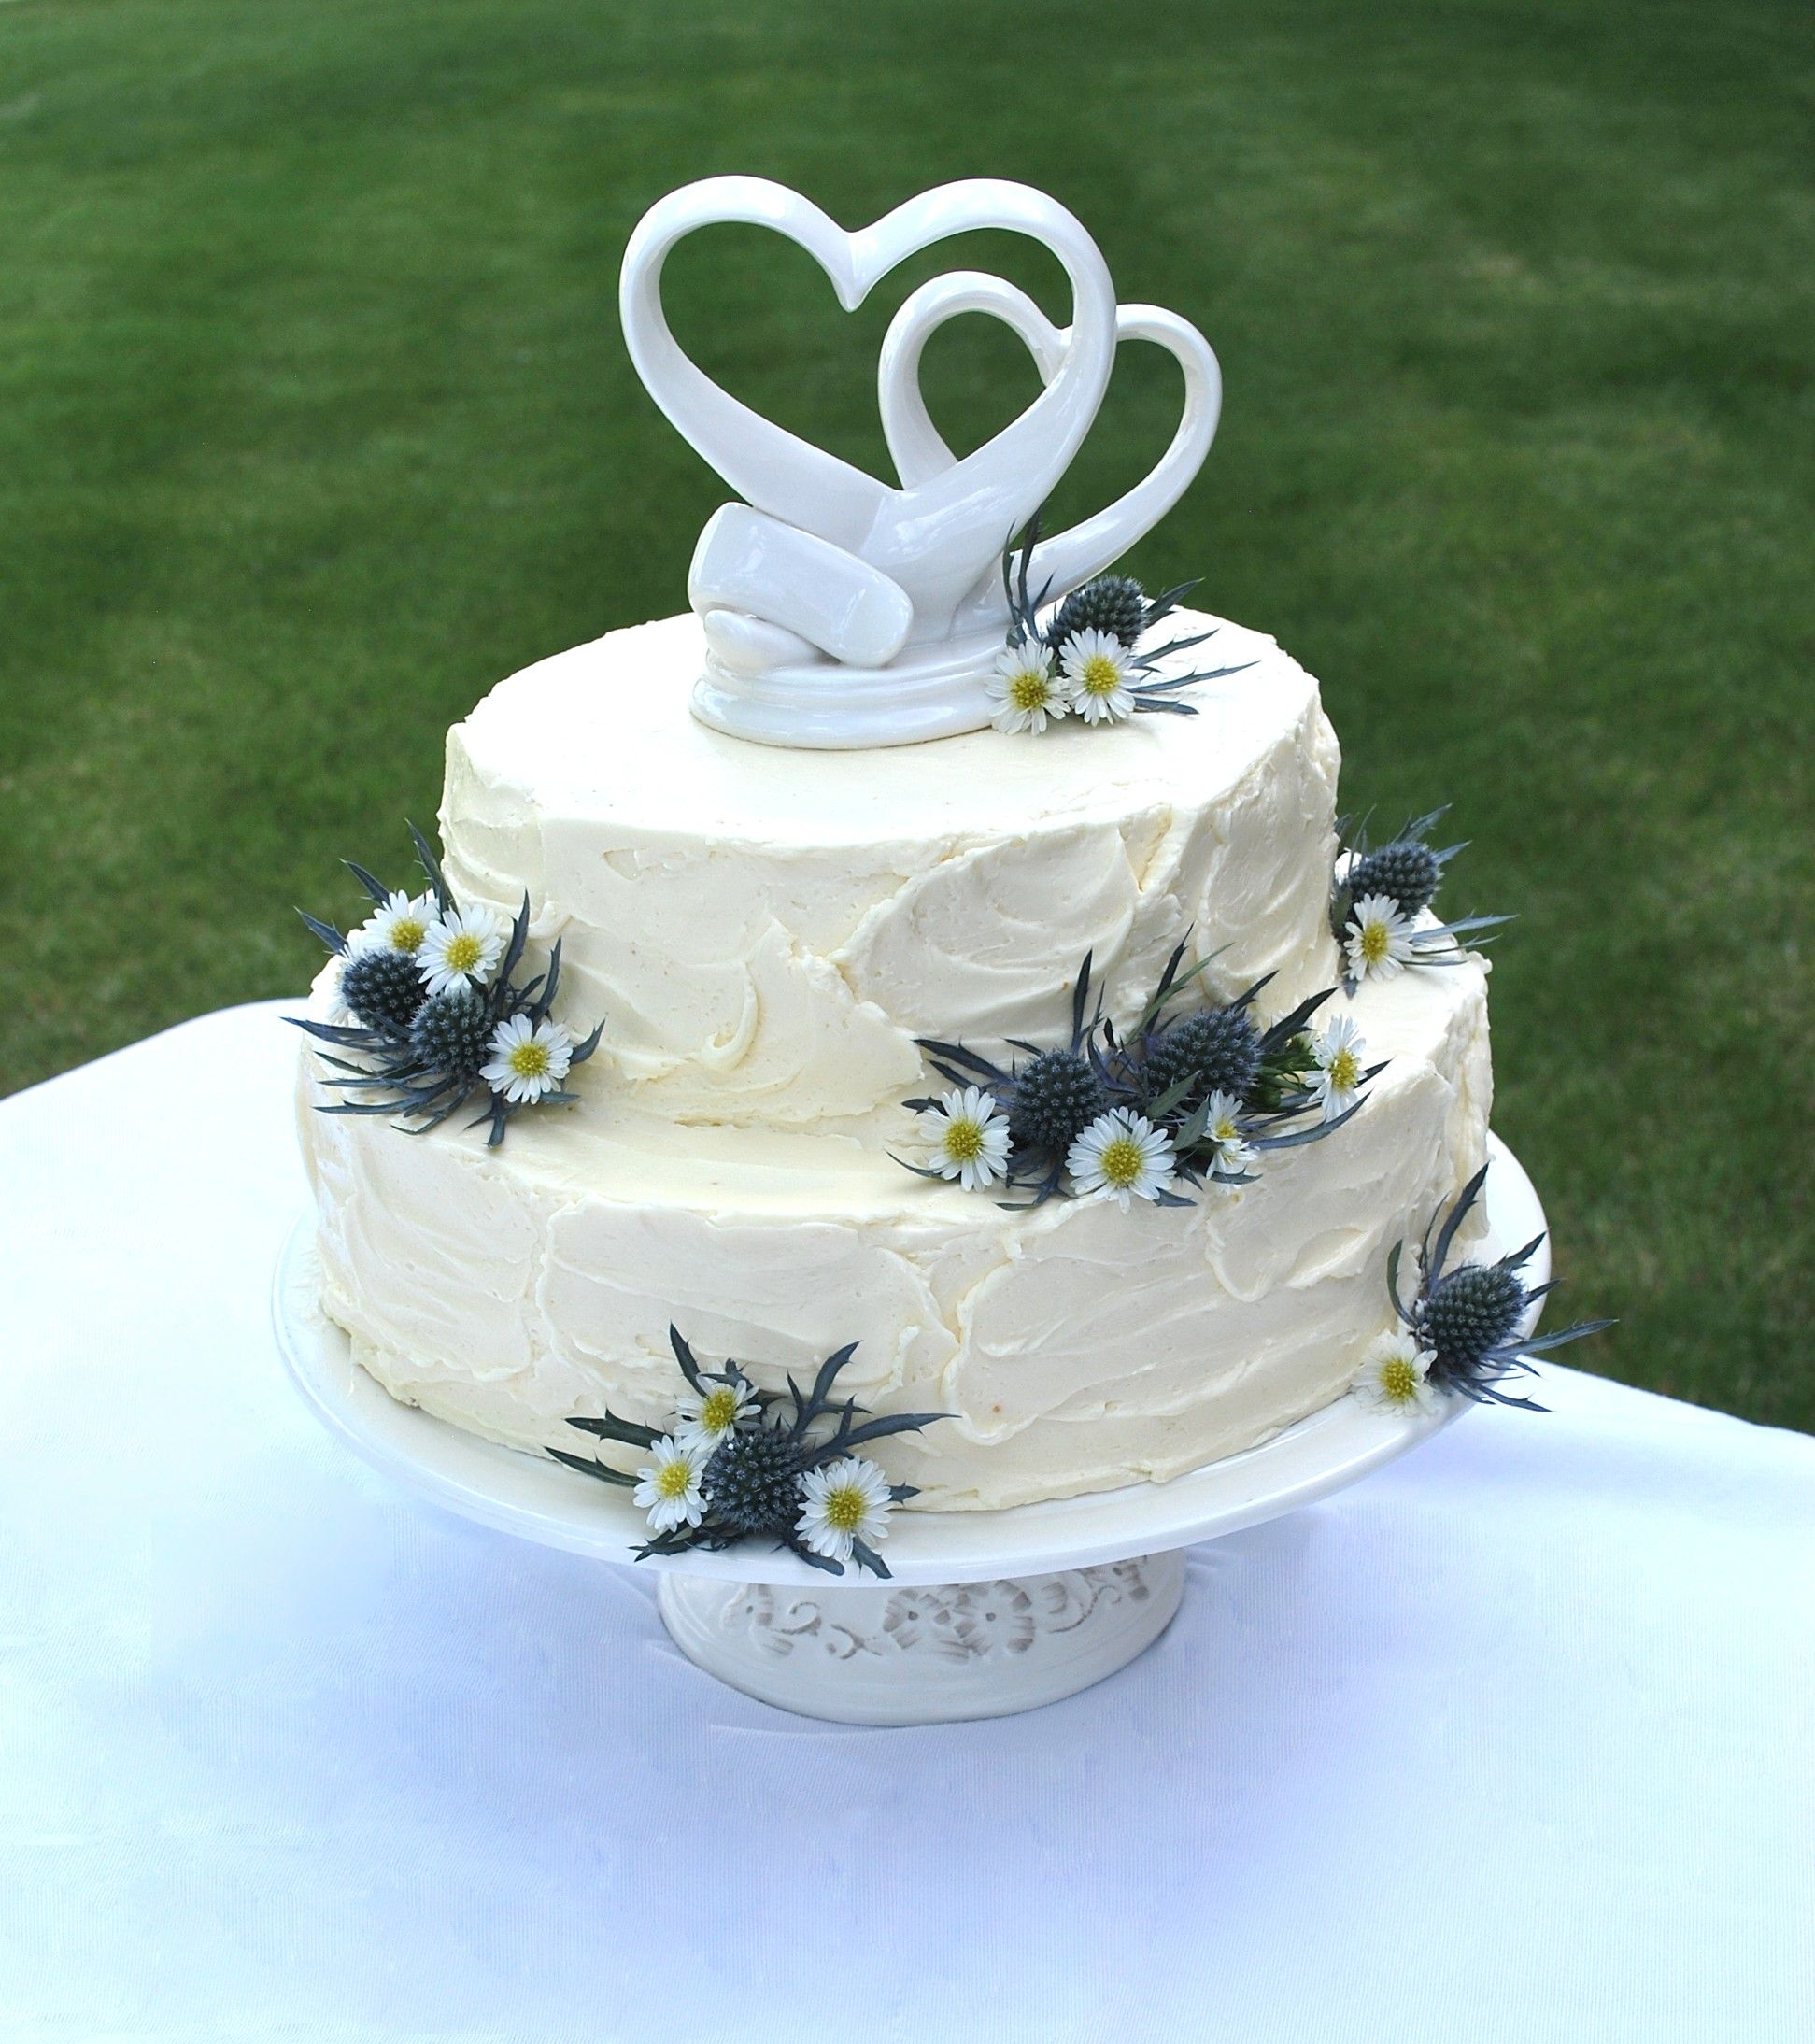 Vegan And Gluten Free Wedding Cake Ideas Alternative: Gluten Free, Grain Free, Dairy Free